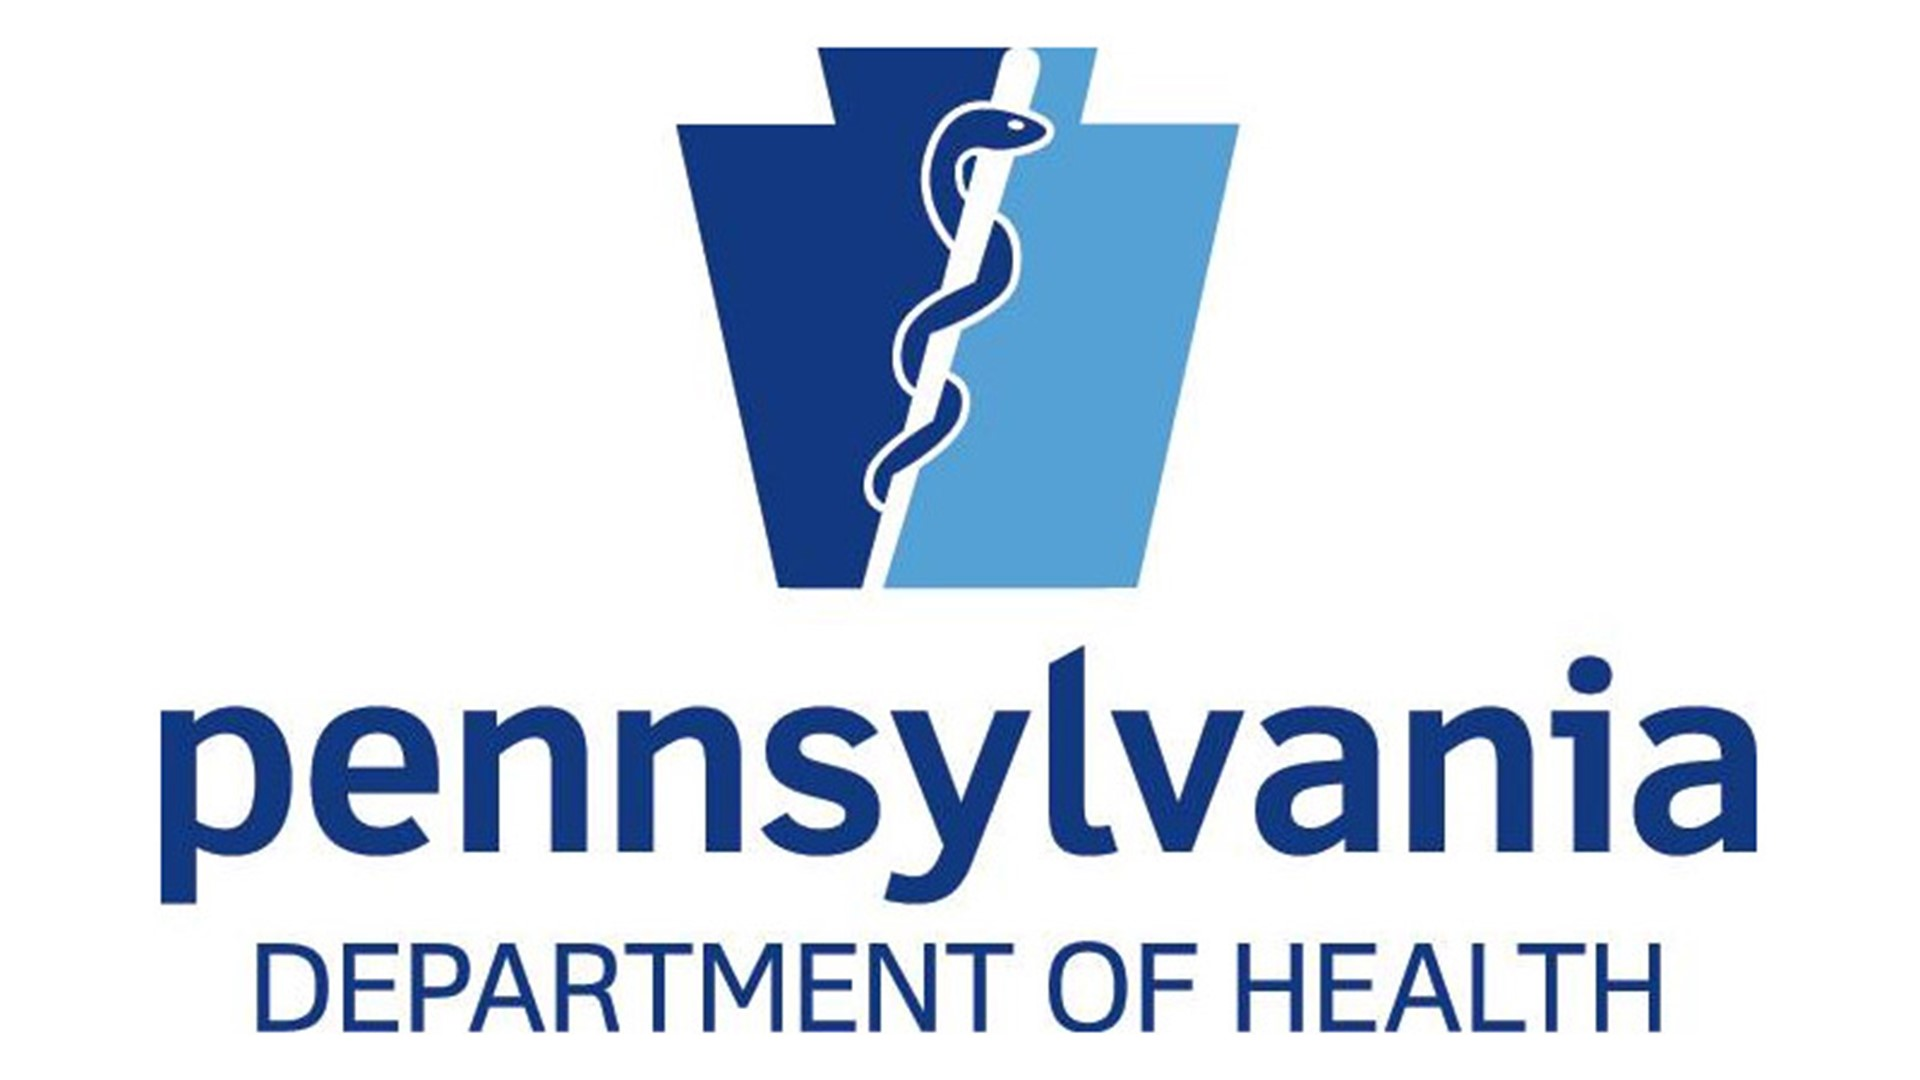 The PA department of Health logo with that text and a keystone image.